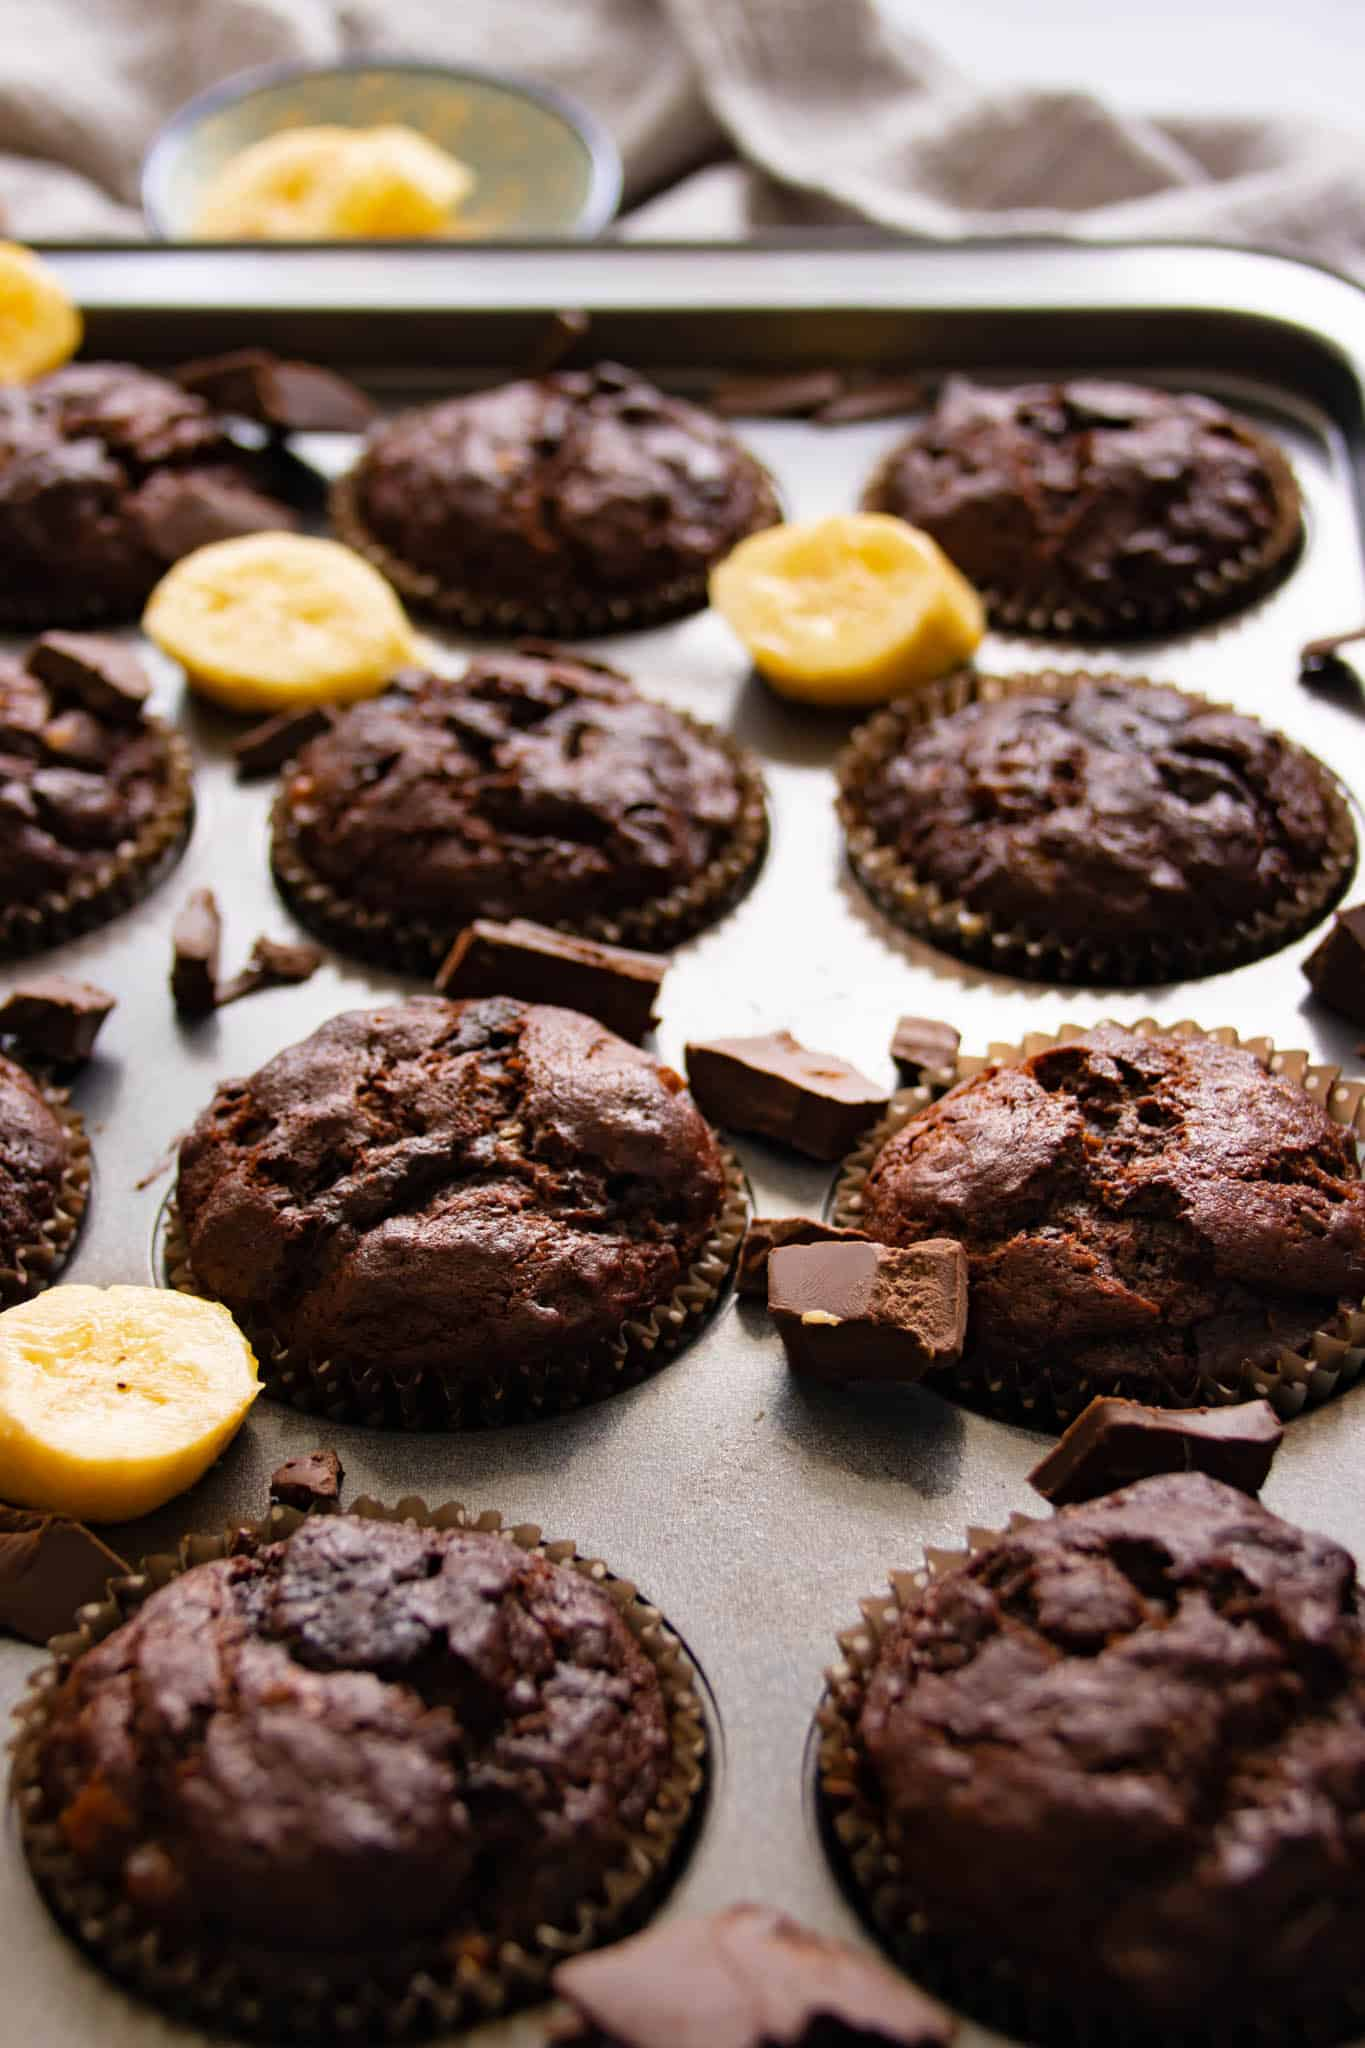 Double chocolate banana muffins, fresh baked in a muffin tray